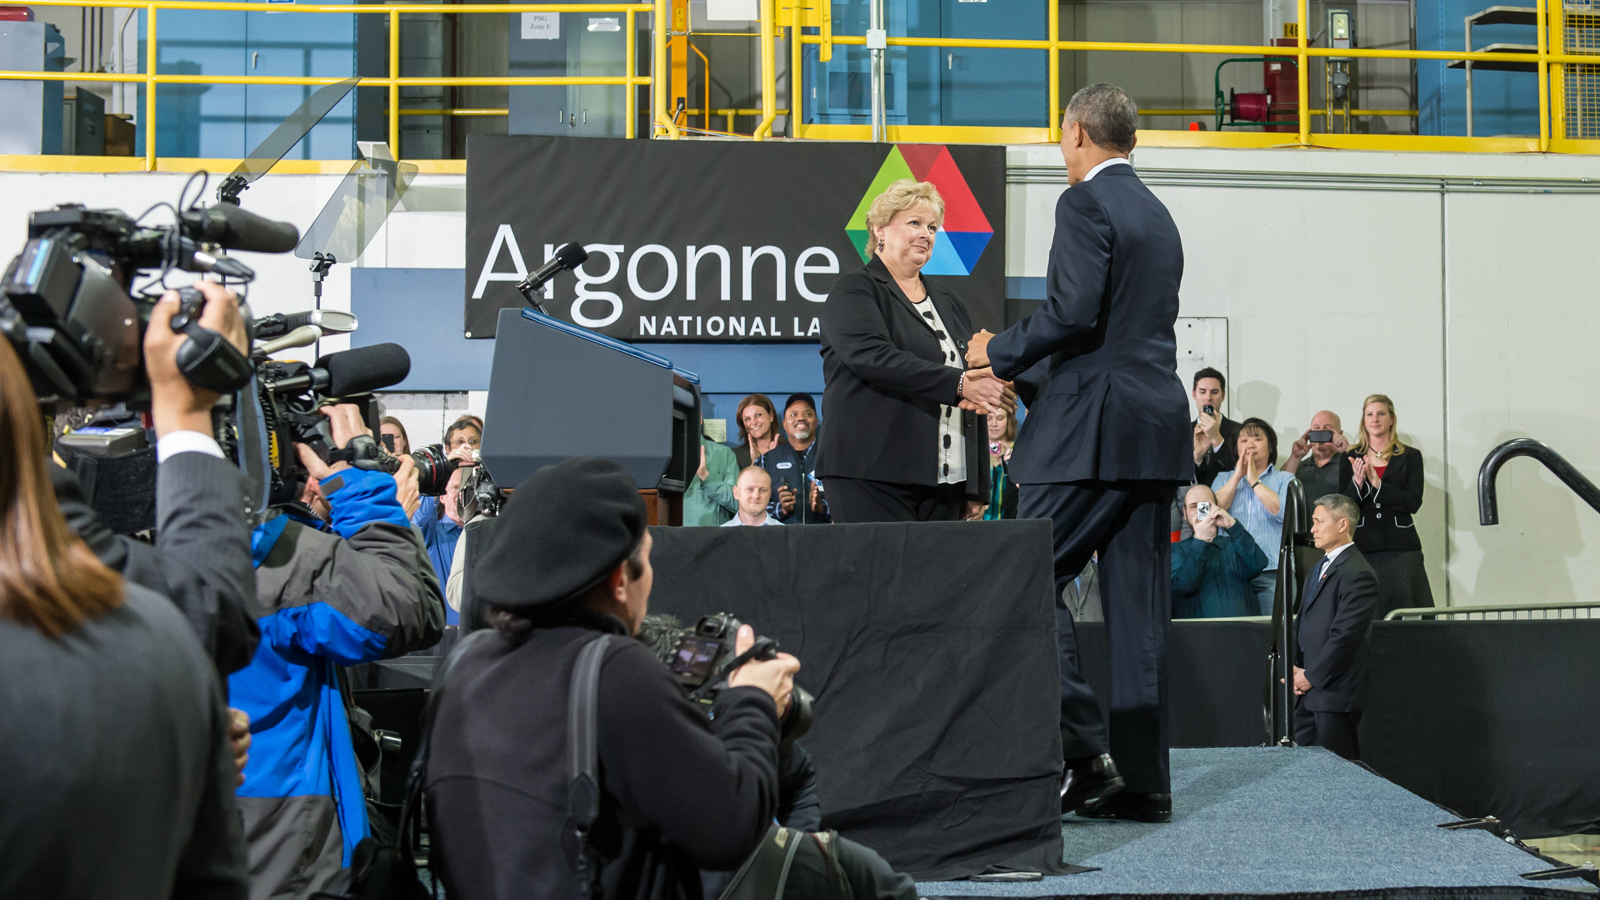 Ann Schlenker, Director of Argonne's Center for Transportation Research, welcomes President Obama to the podium.